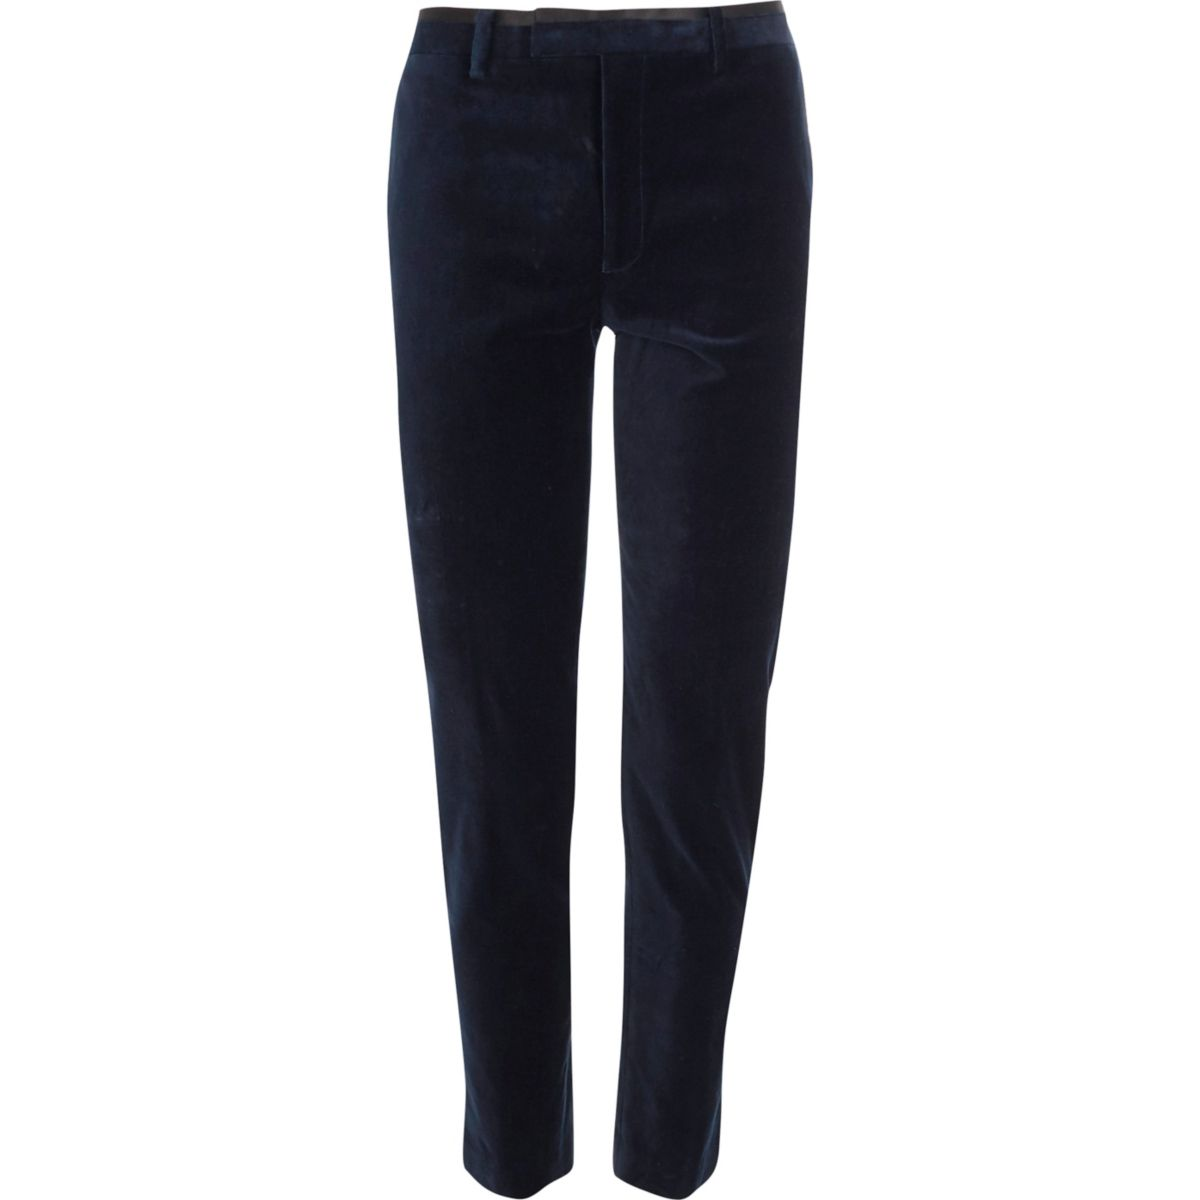 Navy skinny fit velvet suit pants